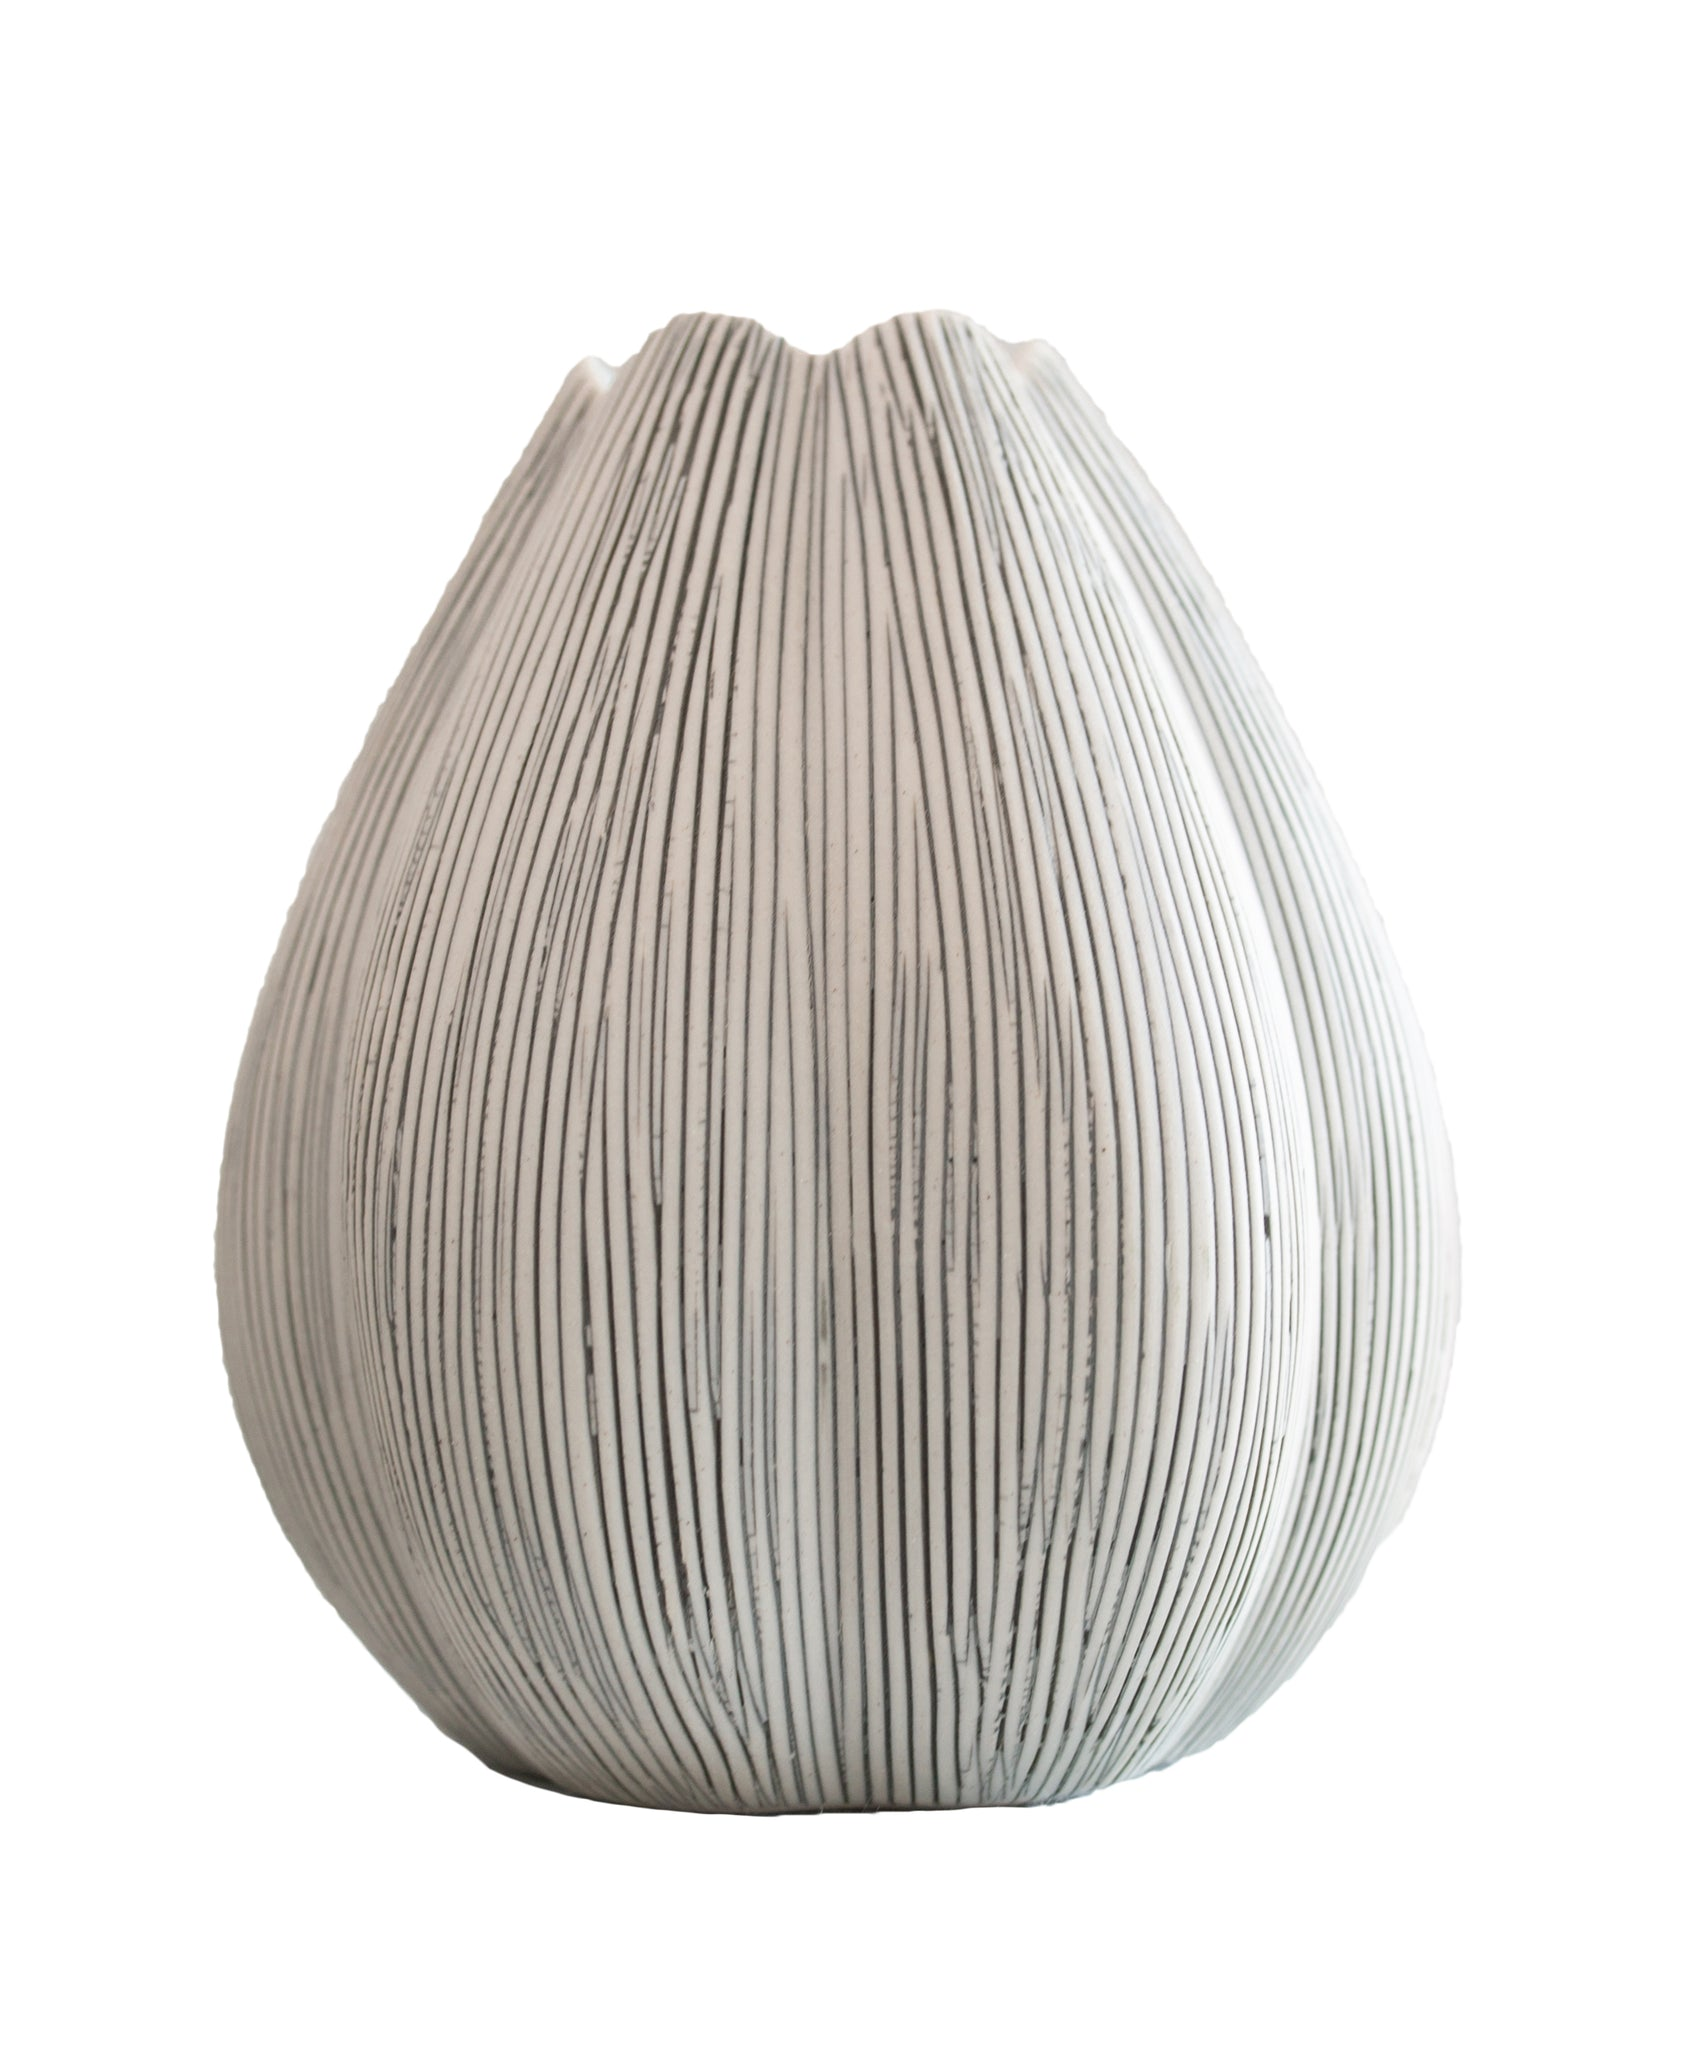 Lily Bud Vase - Amy Berry Home